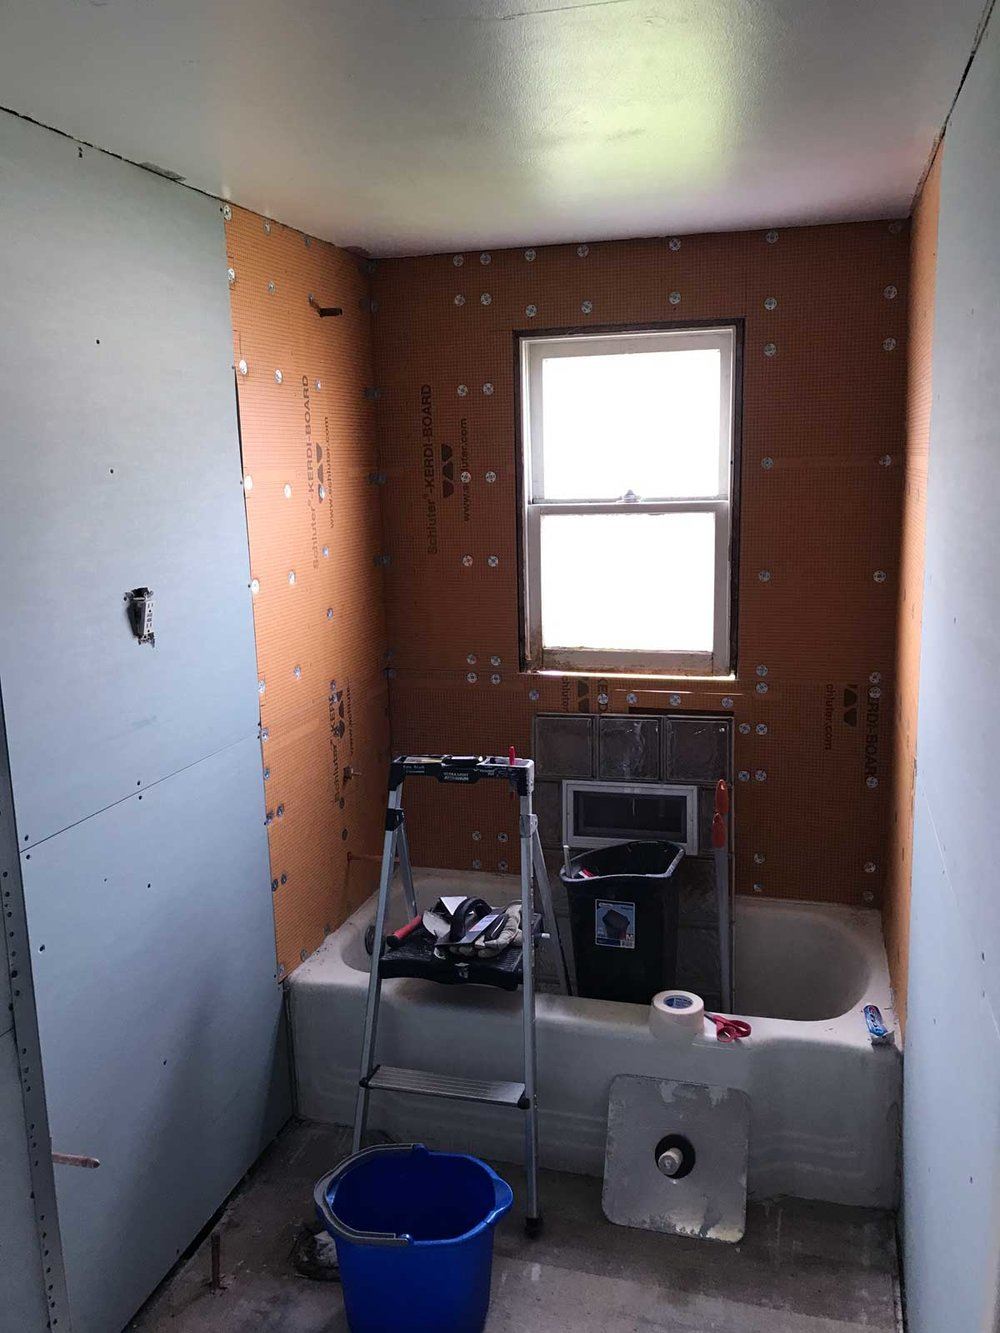 15-Day-Bathroom-Renovation-17.jpg